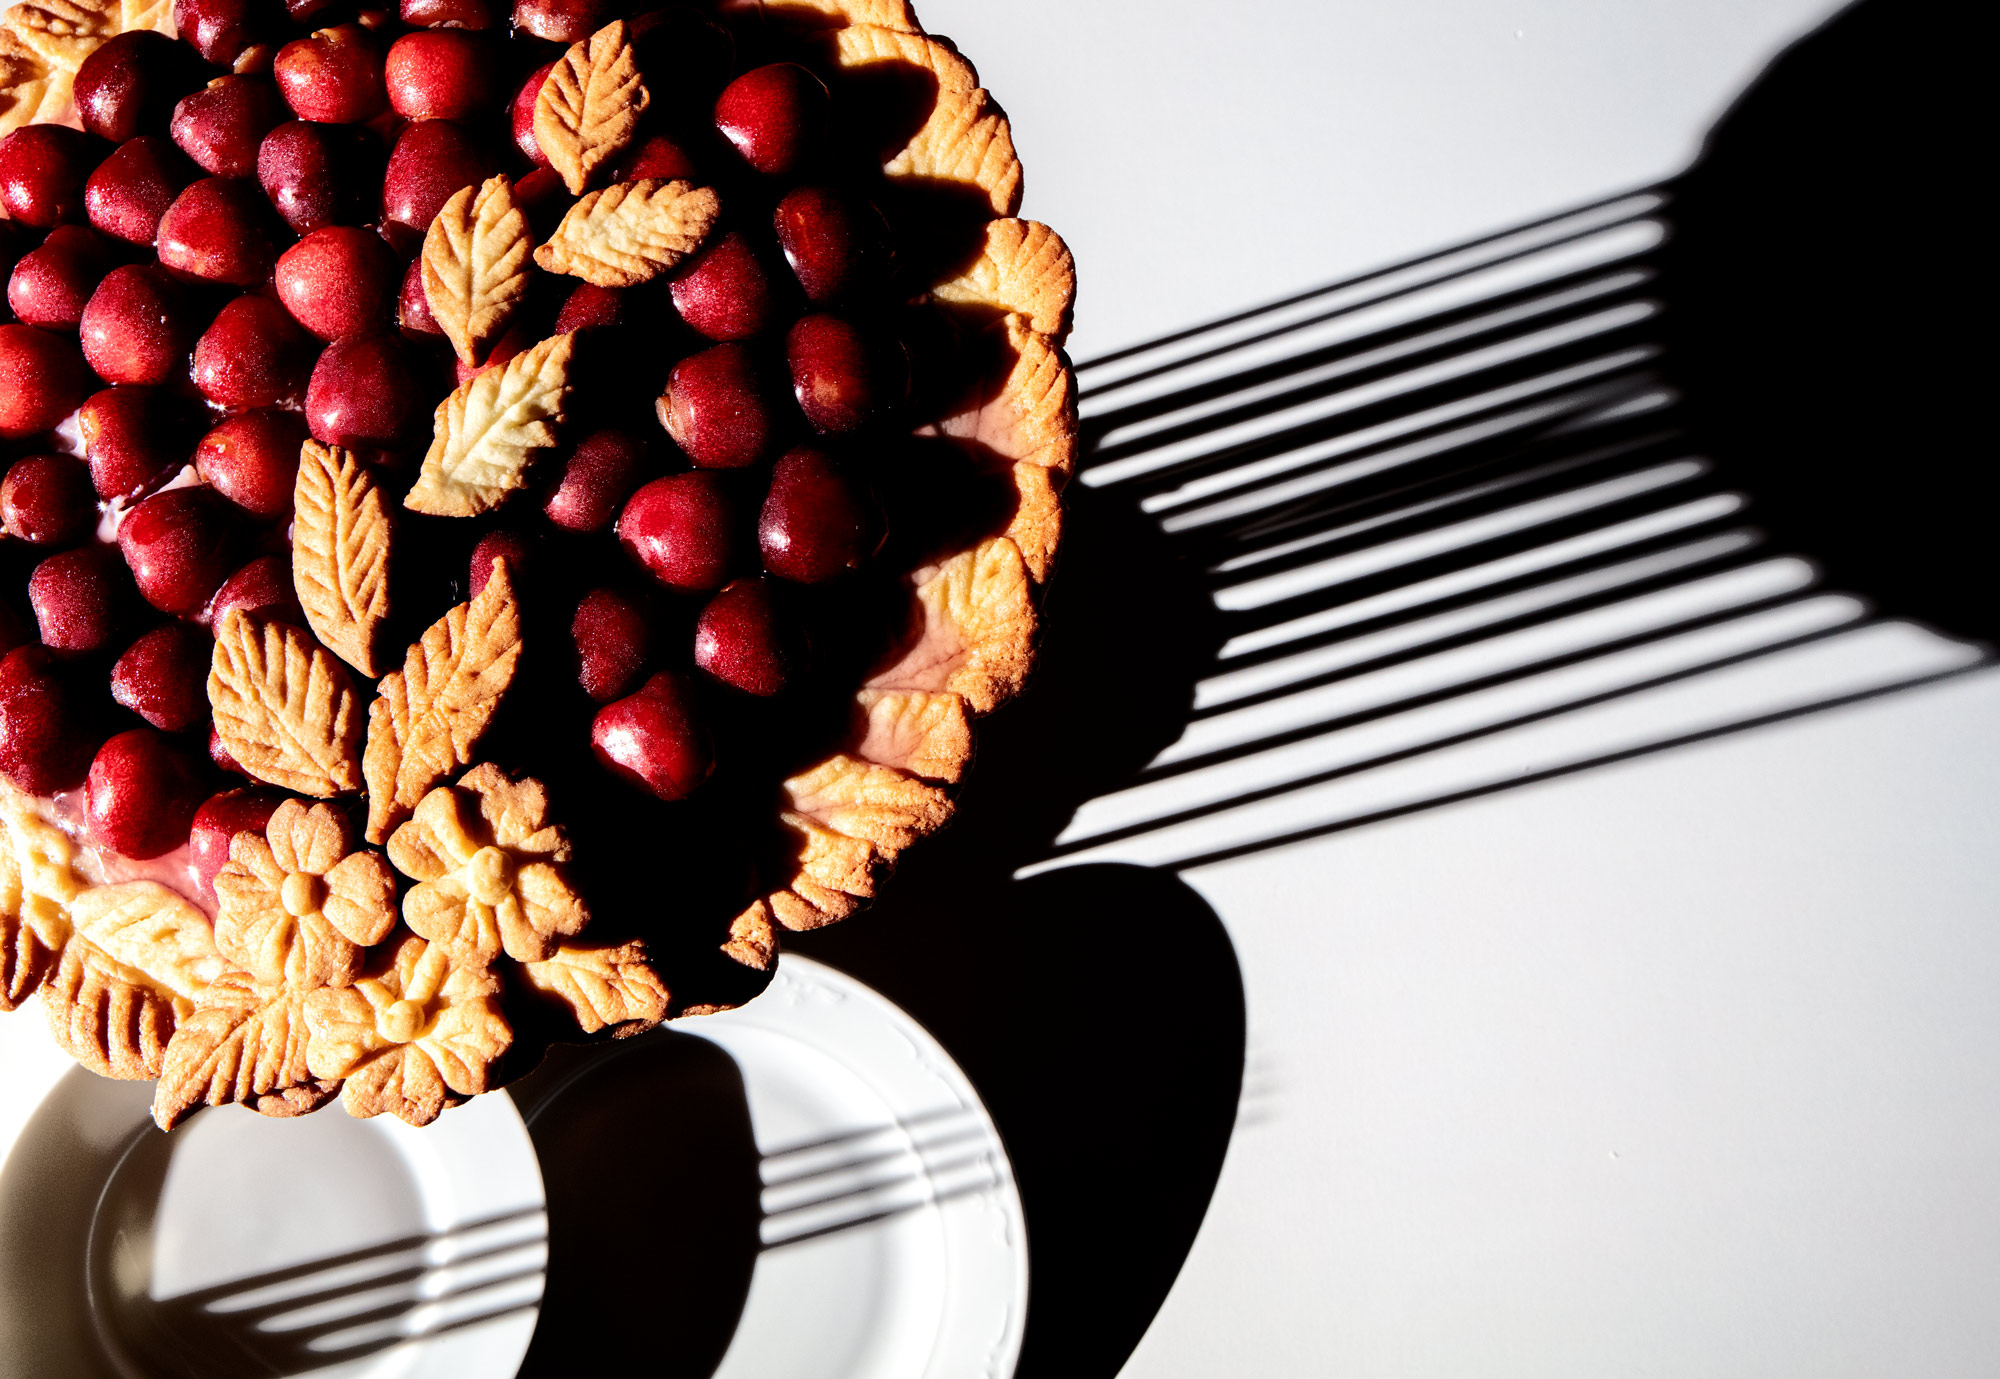 A Cherry tarte and a plate. Depicted in strong crisp light with hard shadows. The shadow of a fork is seen just as a pattern of striped shadows